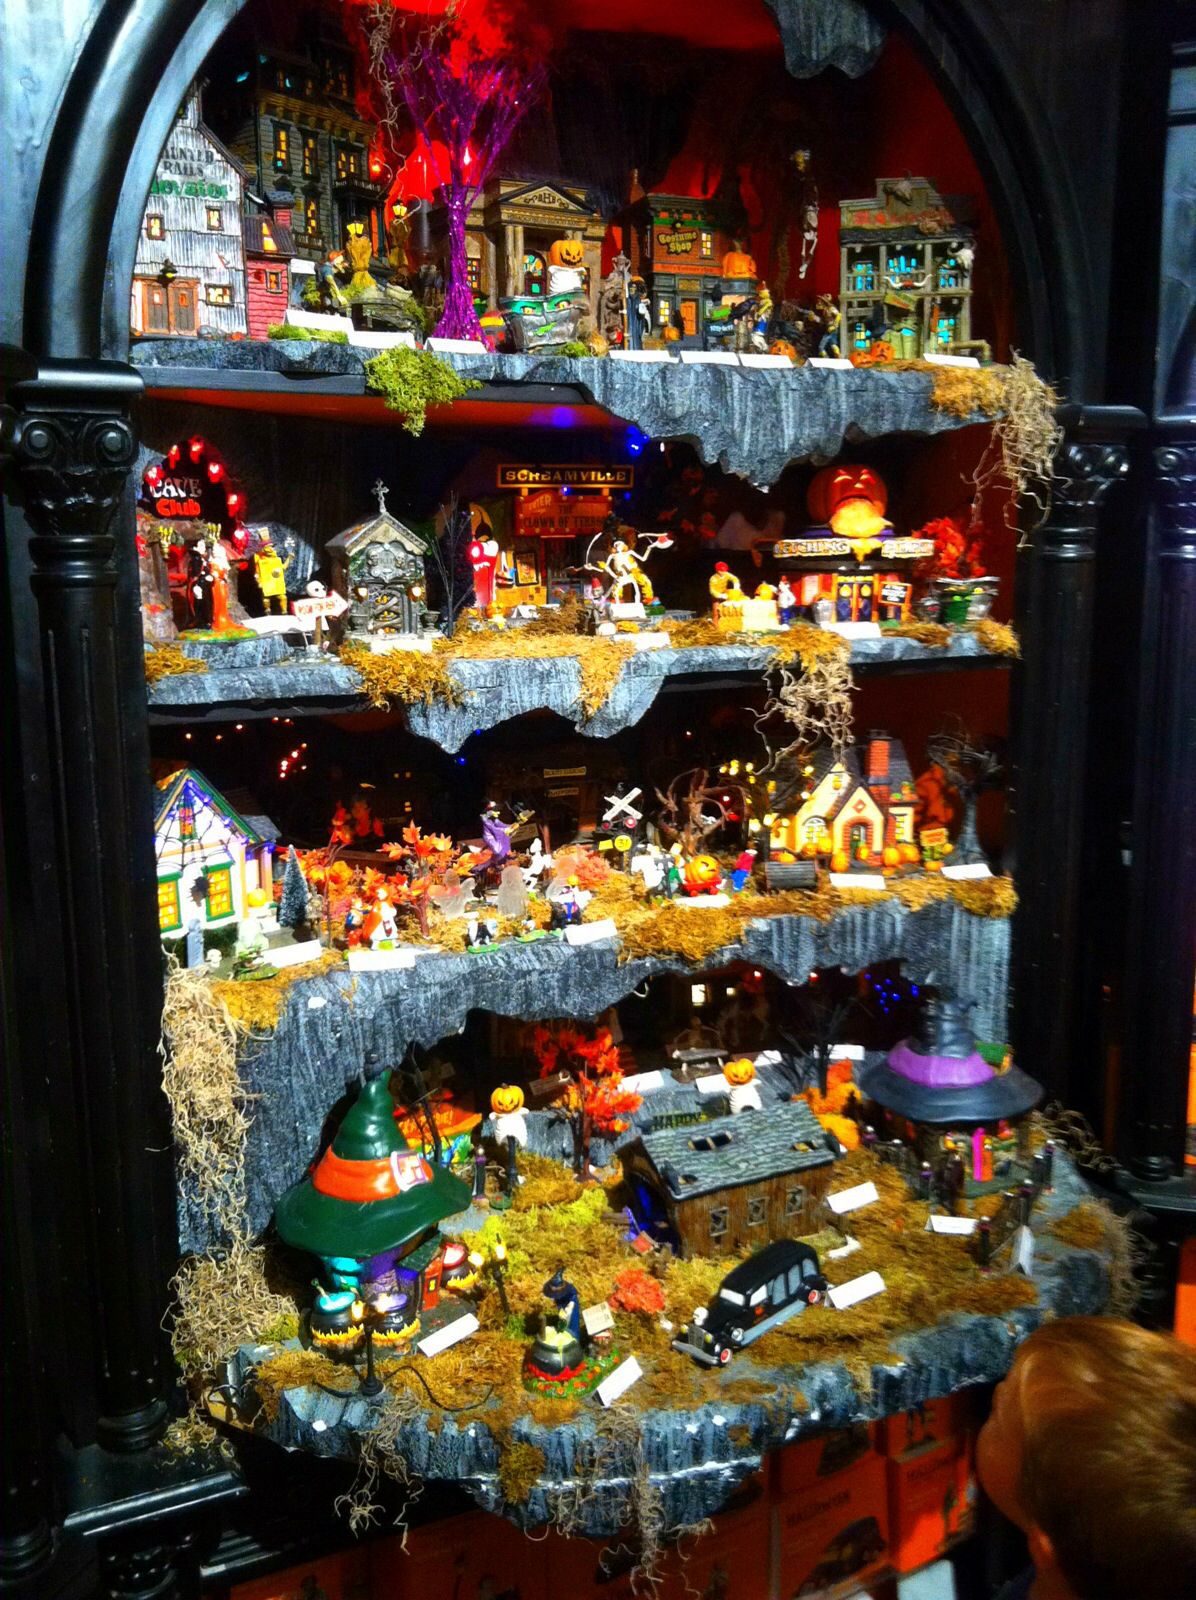 56 Great Motivational Quotes That Will Make Your Day: Halloween Village Display / Department 56 Halloween